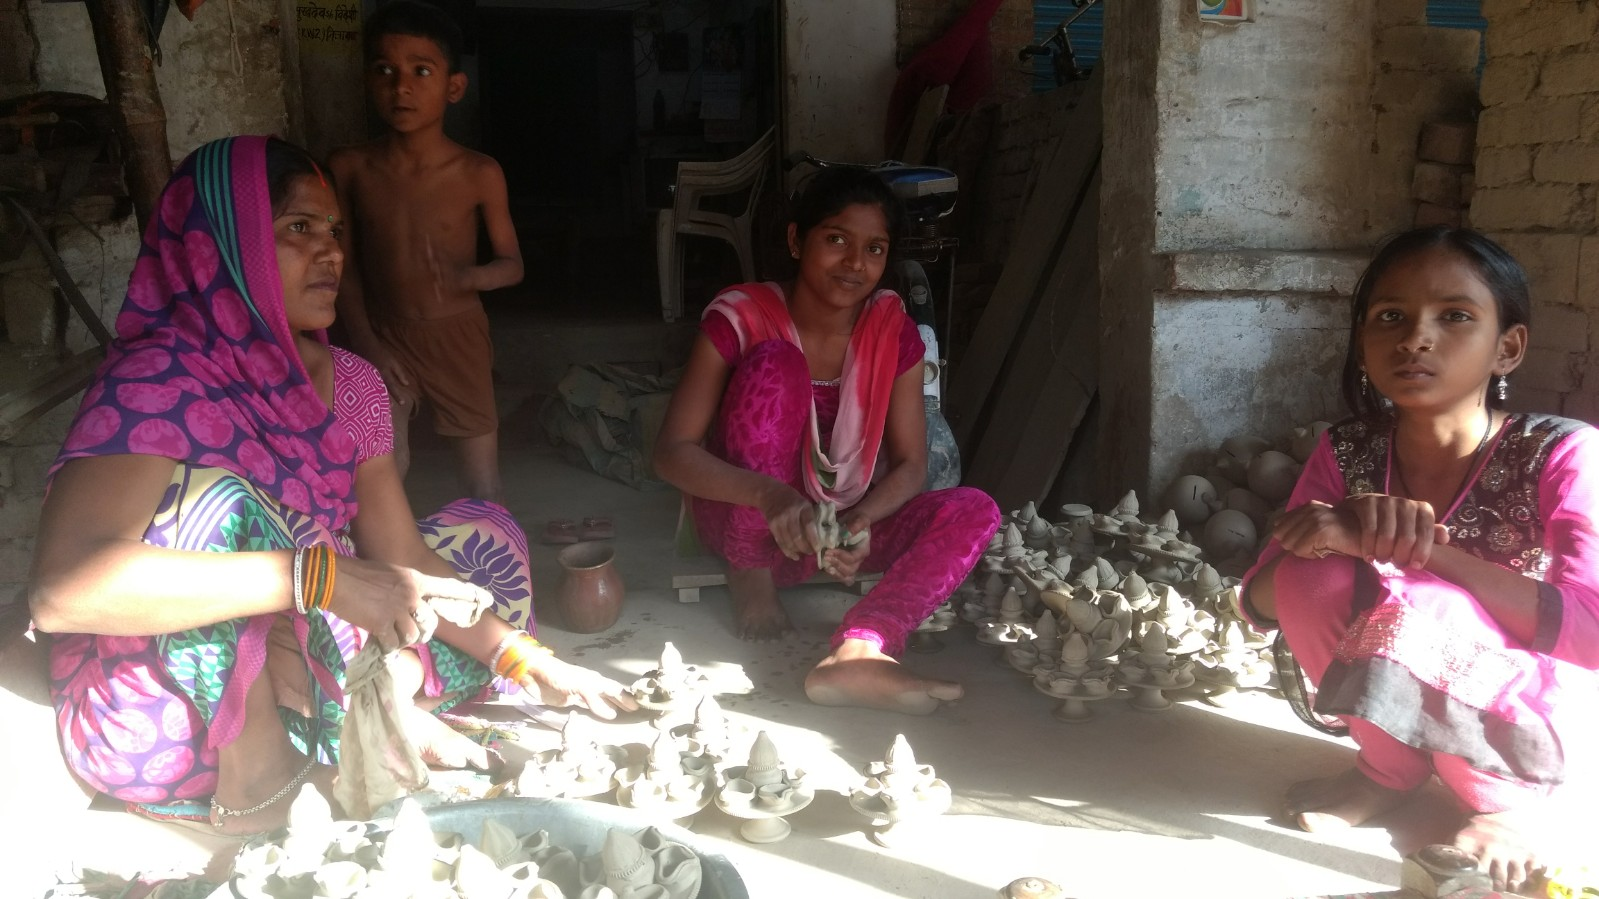 Prema Devi with her daughters making diyas in Nizamabad. Credit: Titash Sen